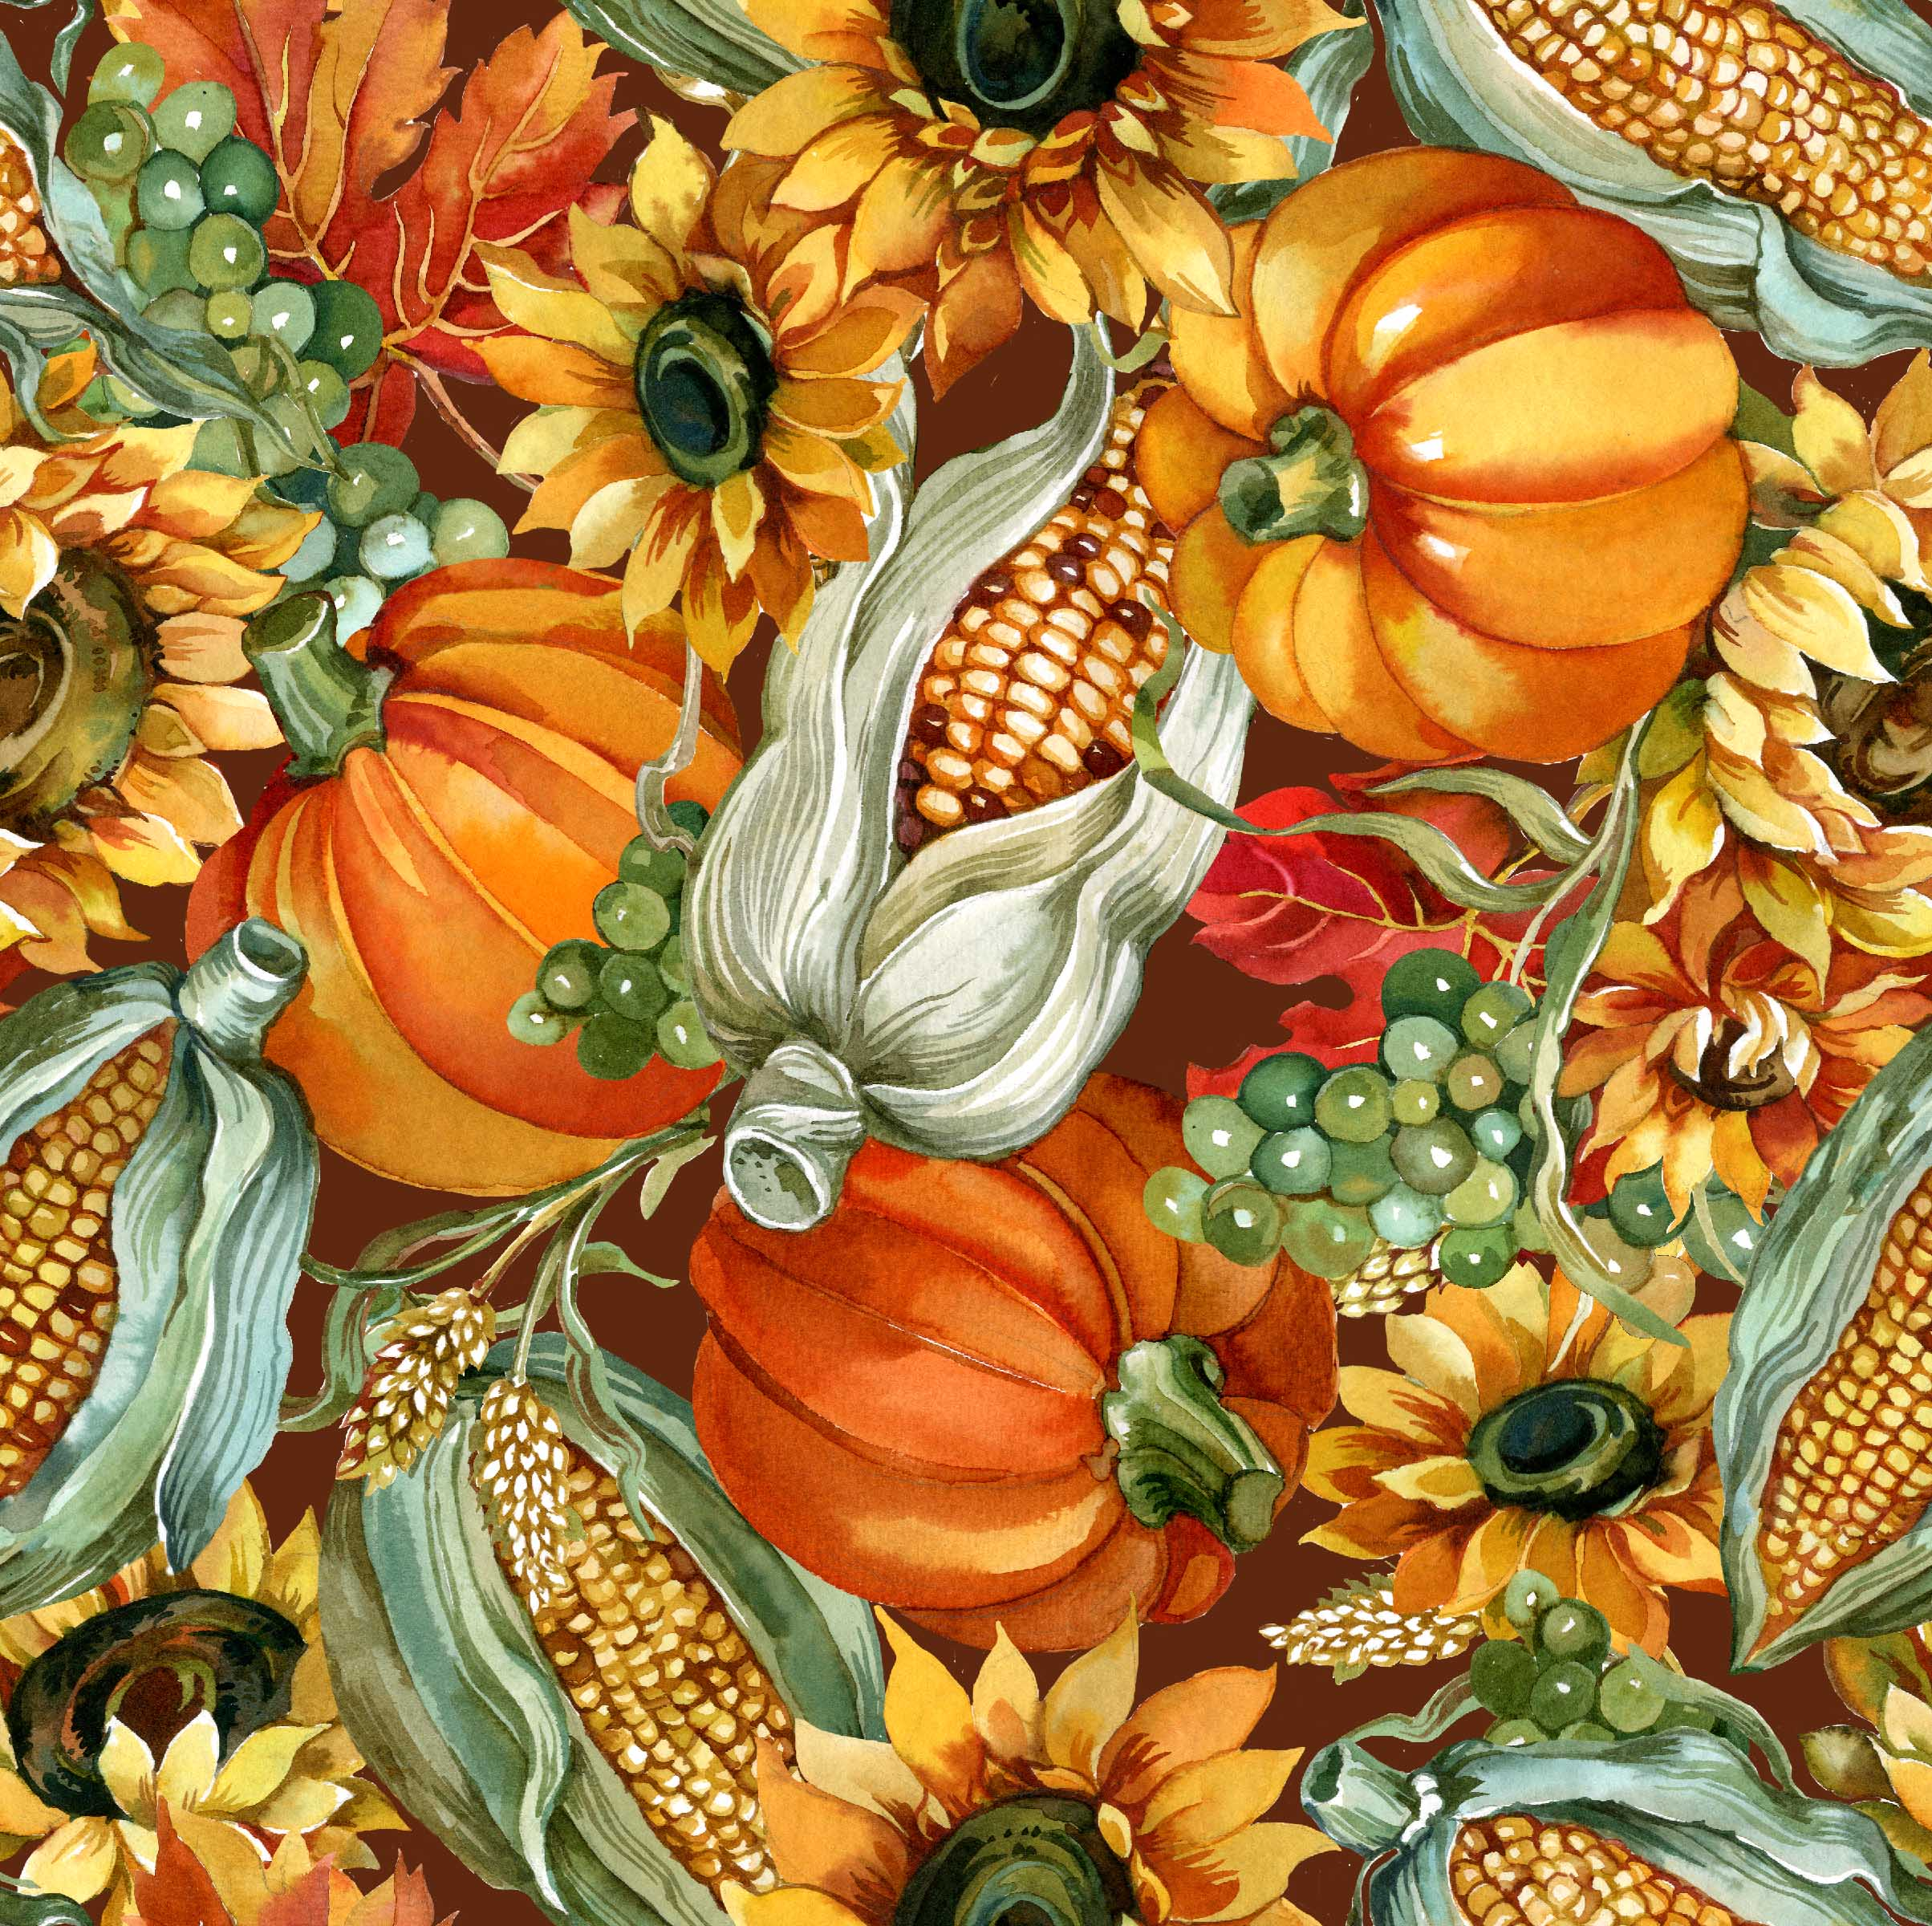 FABRIC EDITIONS, COTTON FABRIC, FAT QUARTER, 18X21, HARVEST GARDEN